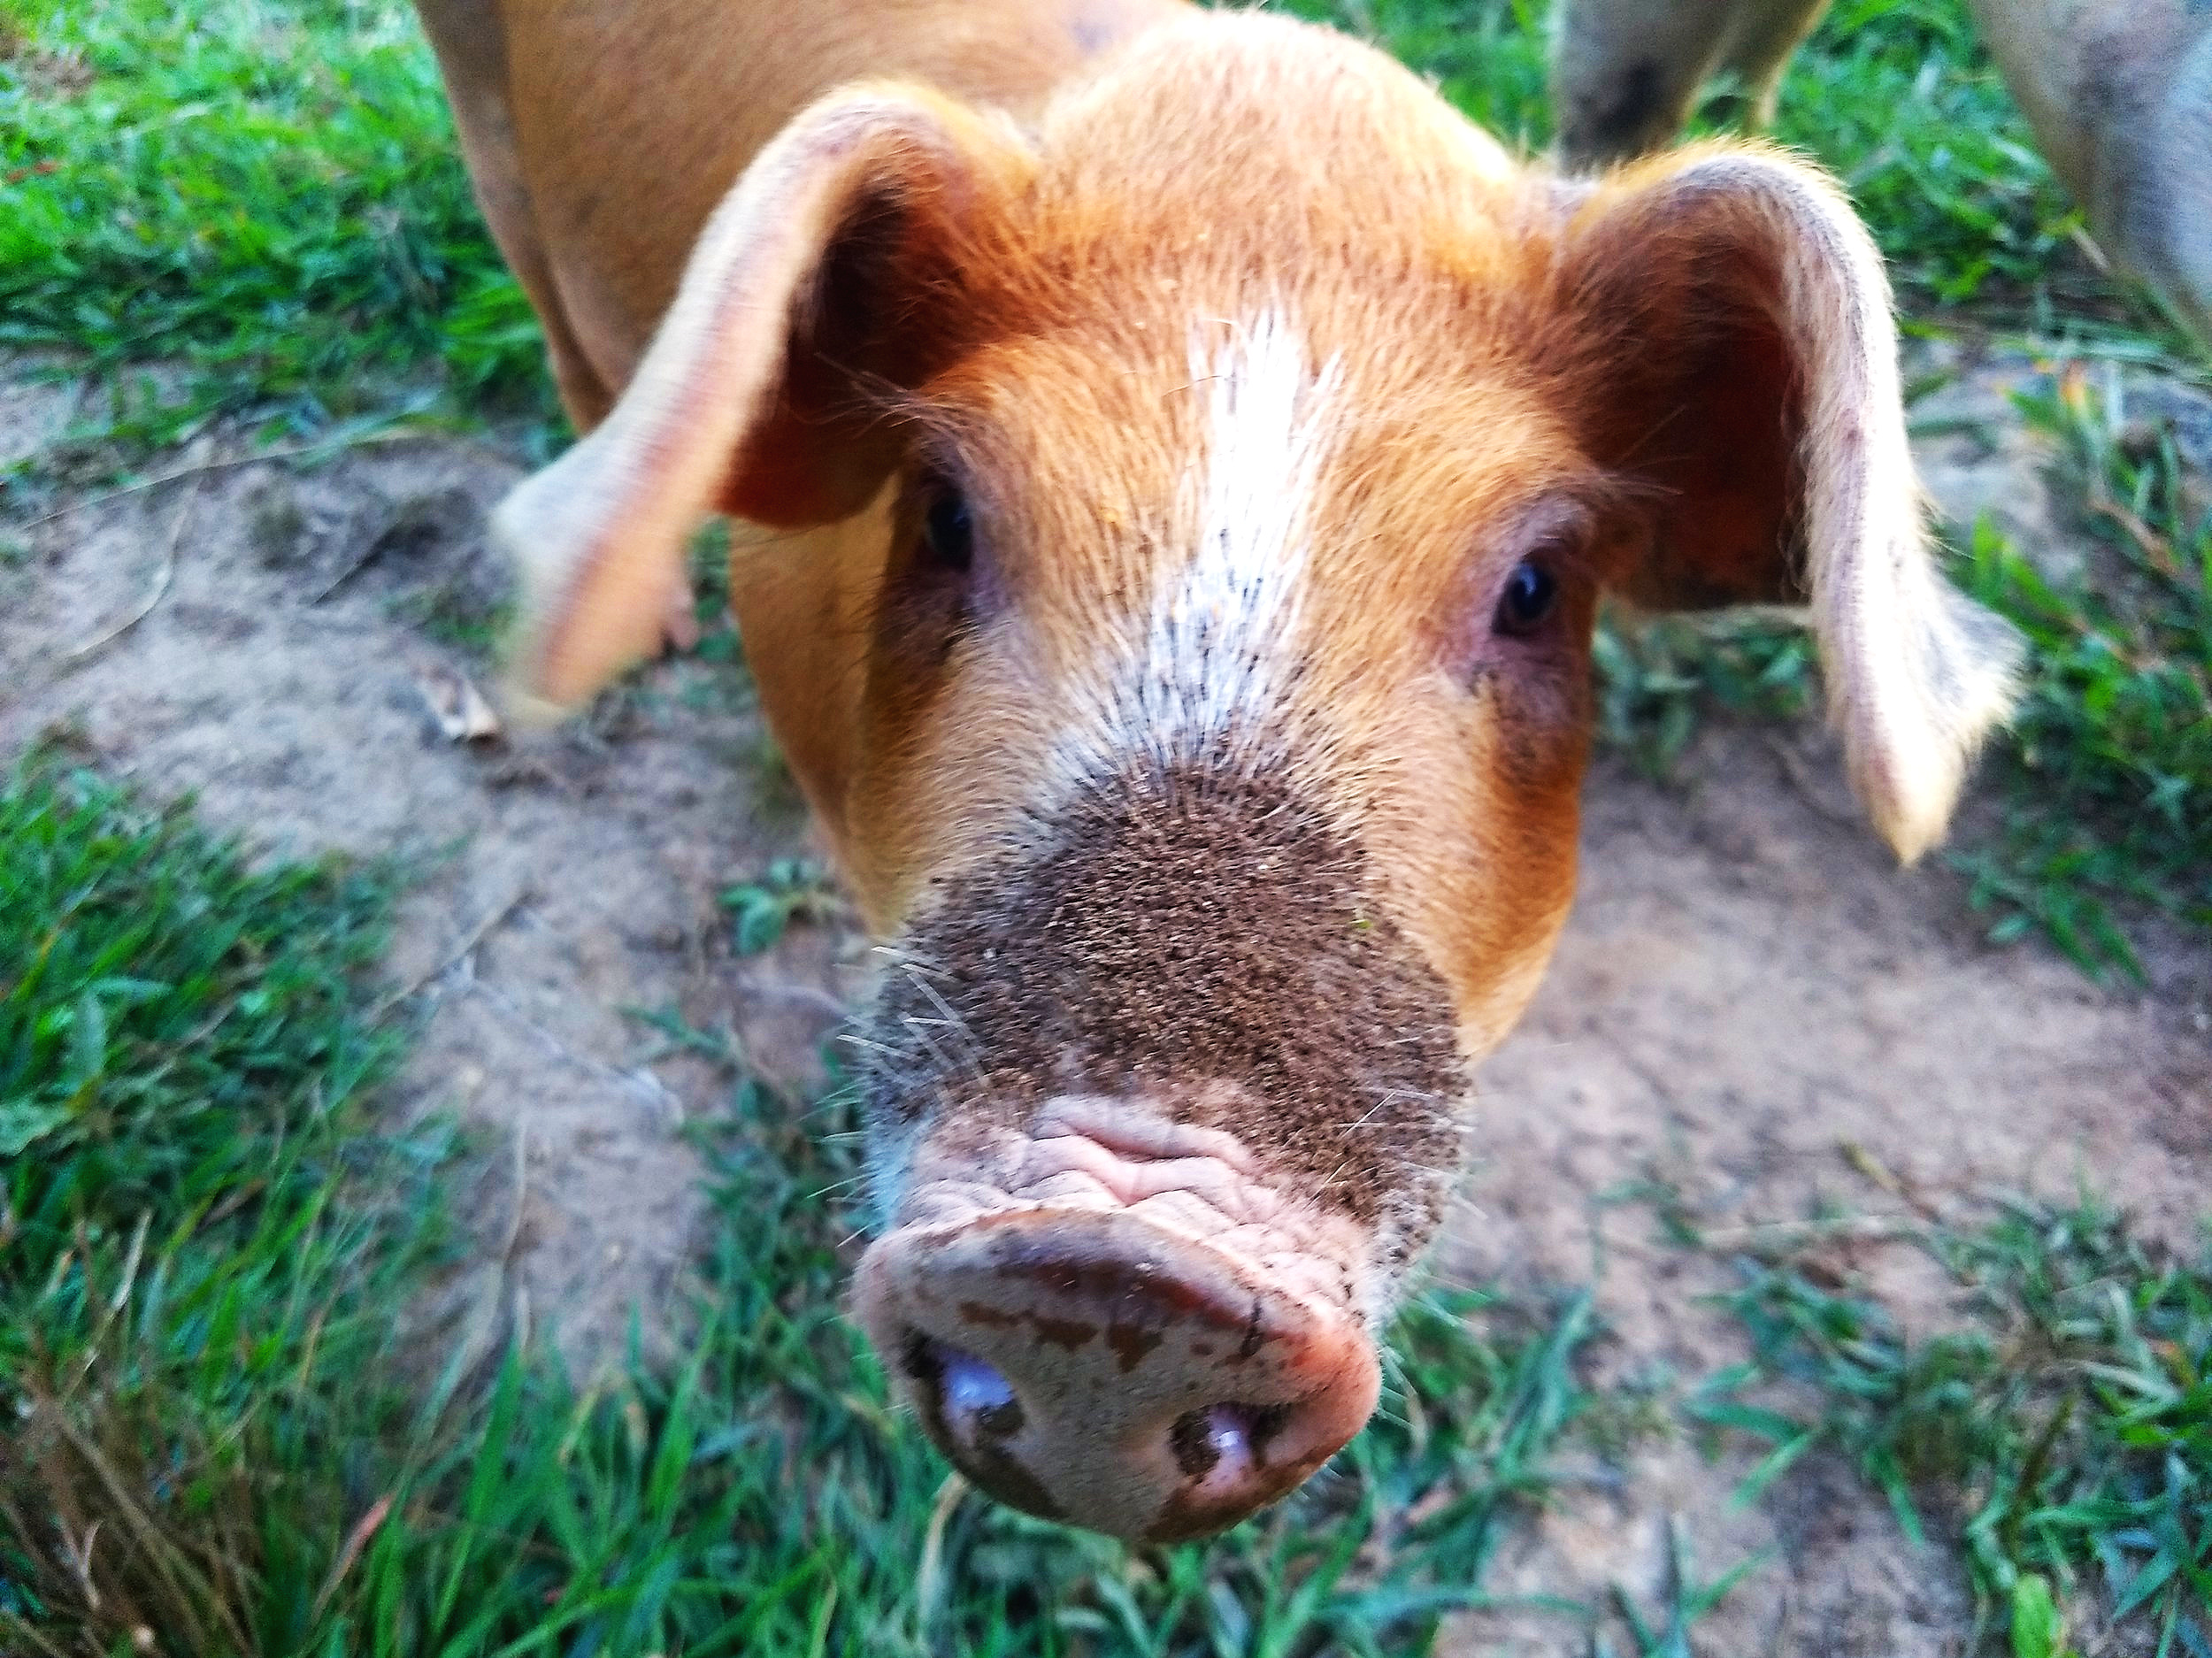 The Pigs - The pigs are doing well. They continue to fatten for Fall Pork coming up. We are hoping for a good acorn crop this year which makes the pork taste really good and gives them lots to forage on. Last years acorns didn't do well but it's looking a lot more promising.